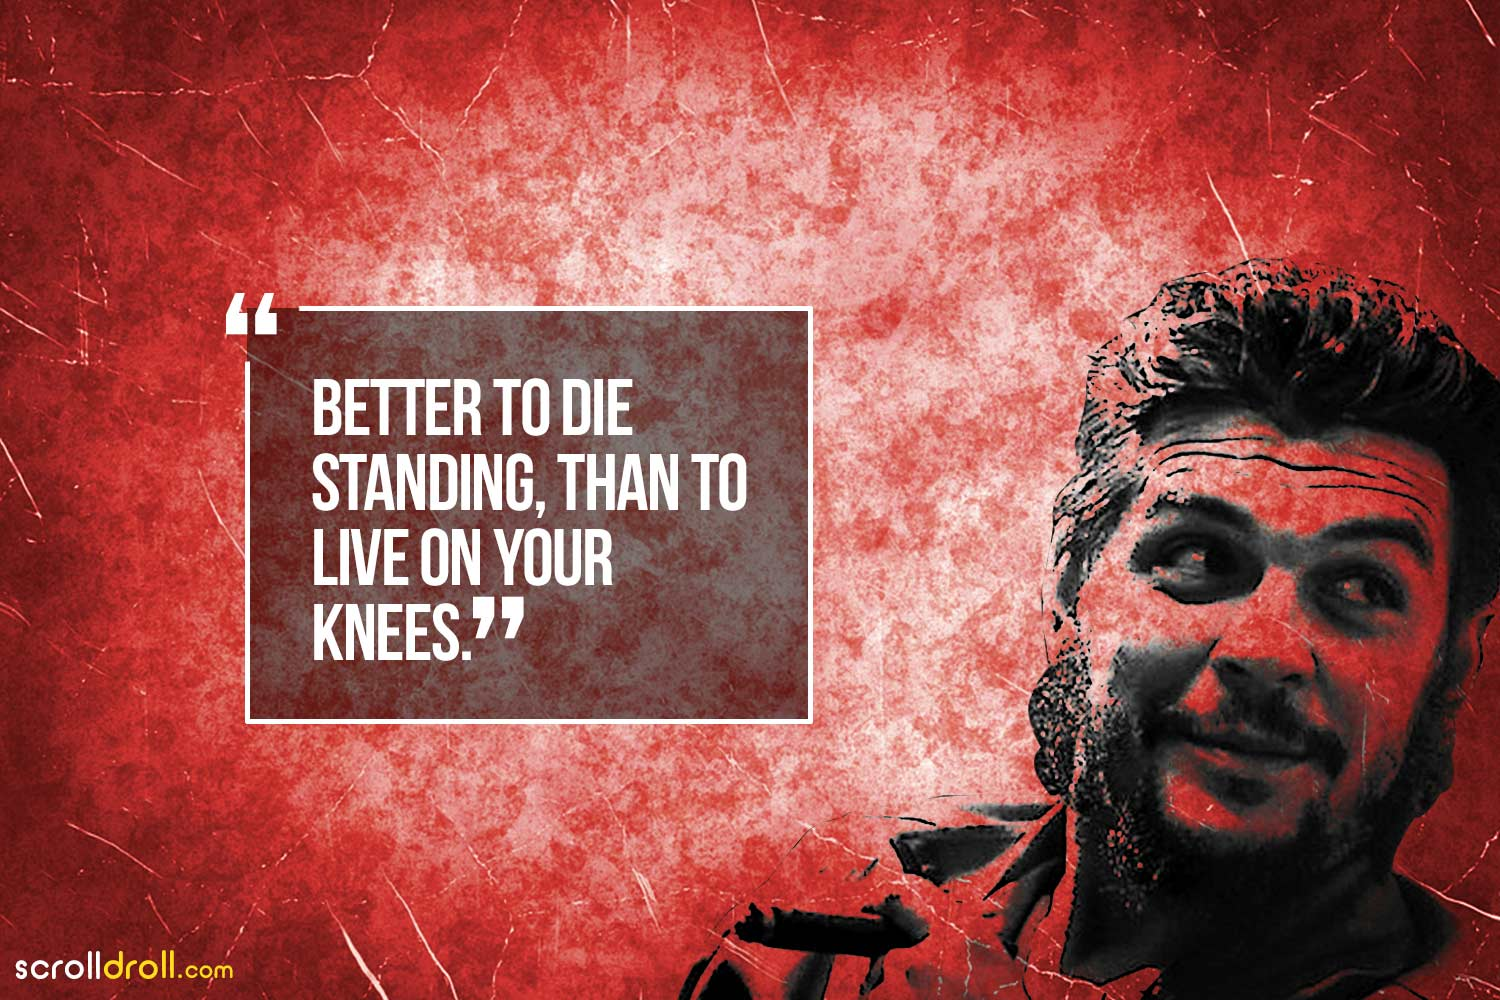 better to die standing, than to live on your knees-che guevara